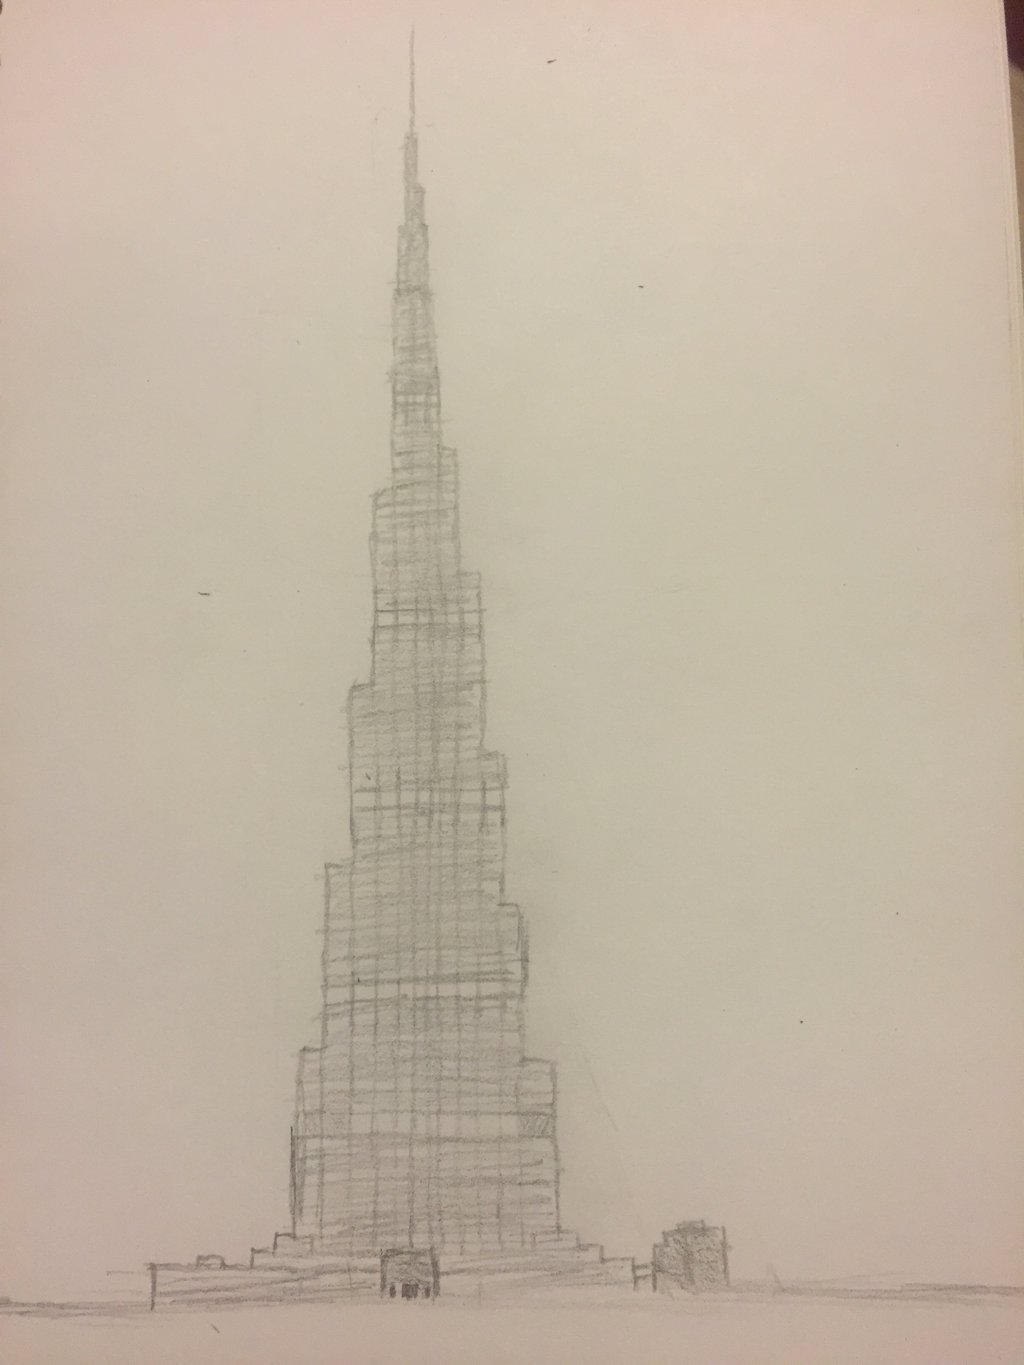 Sketch of burj khalifa by mrcolate8 on deviantart for Burj khalifa sketch